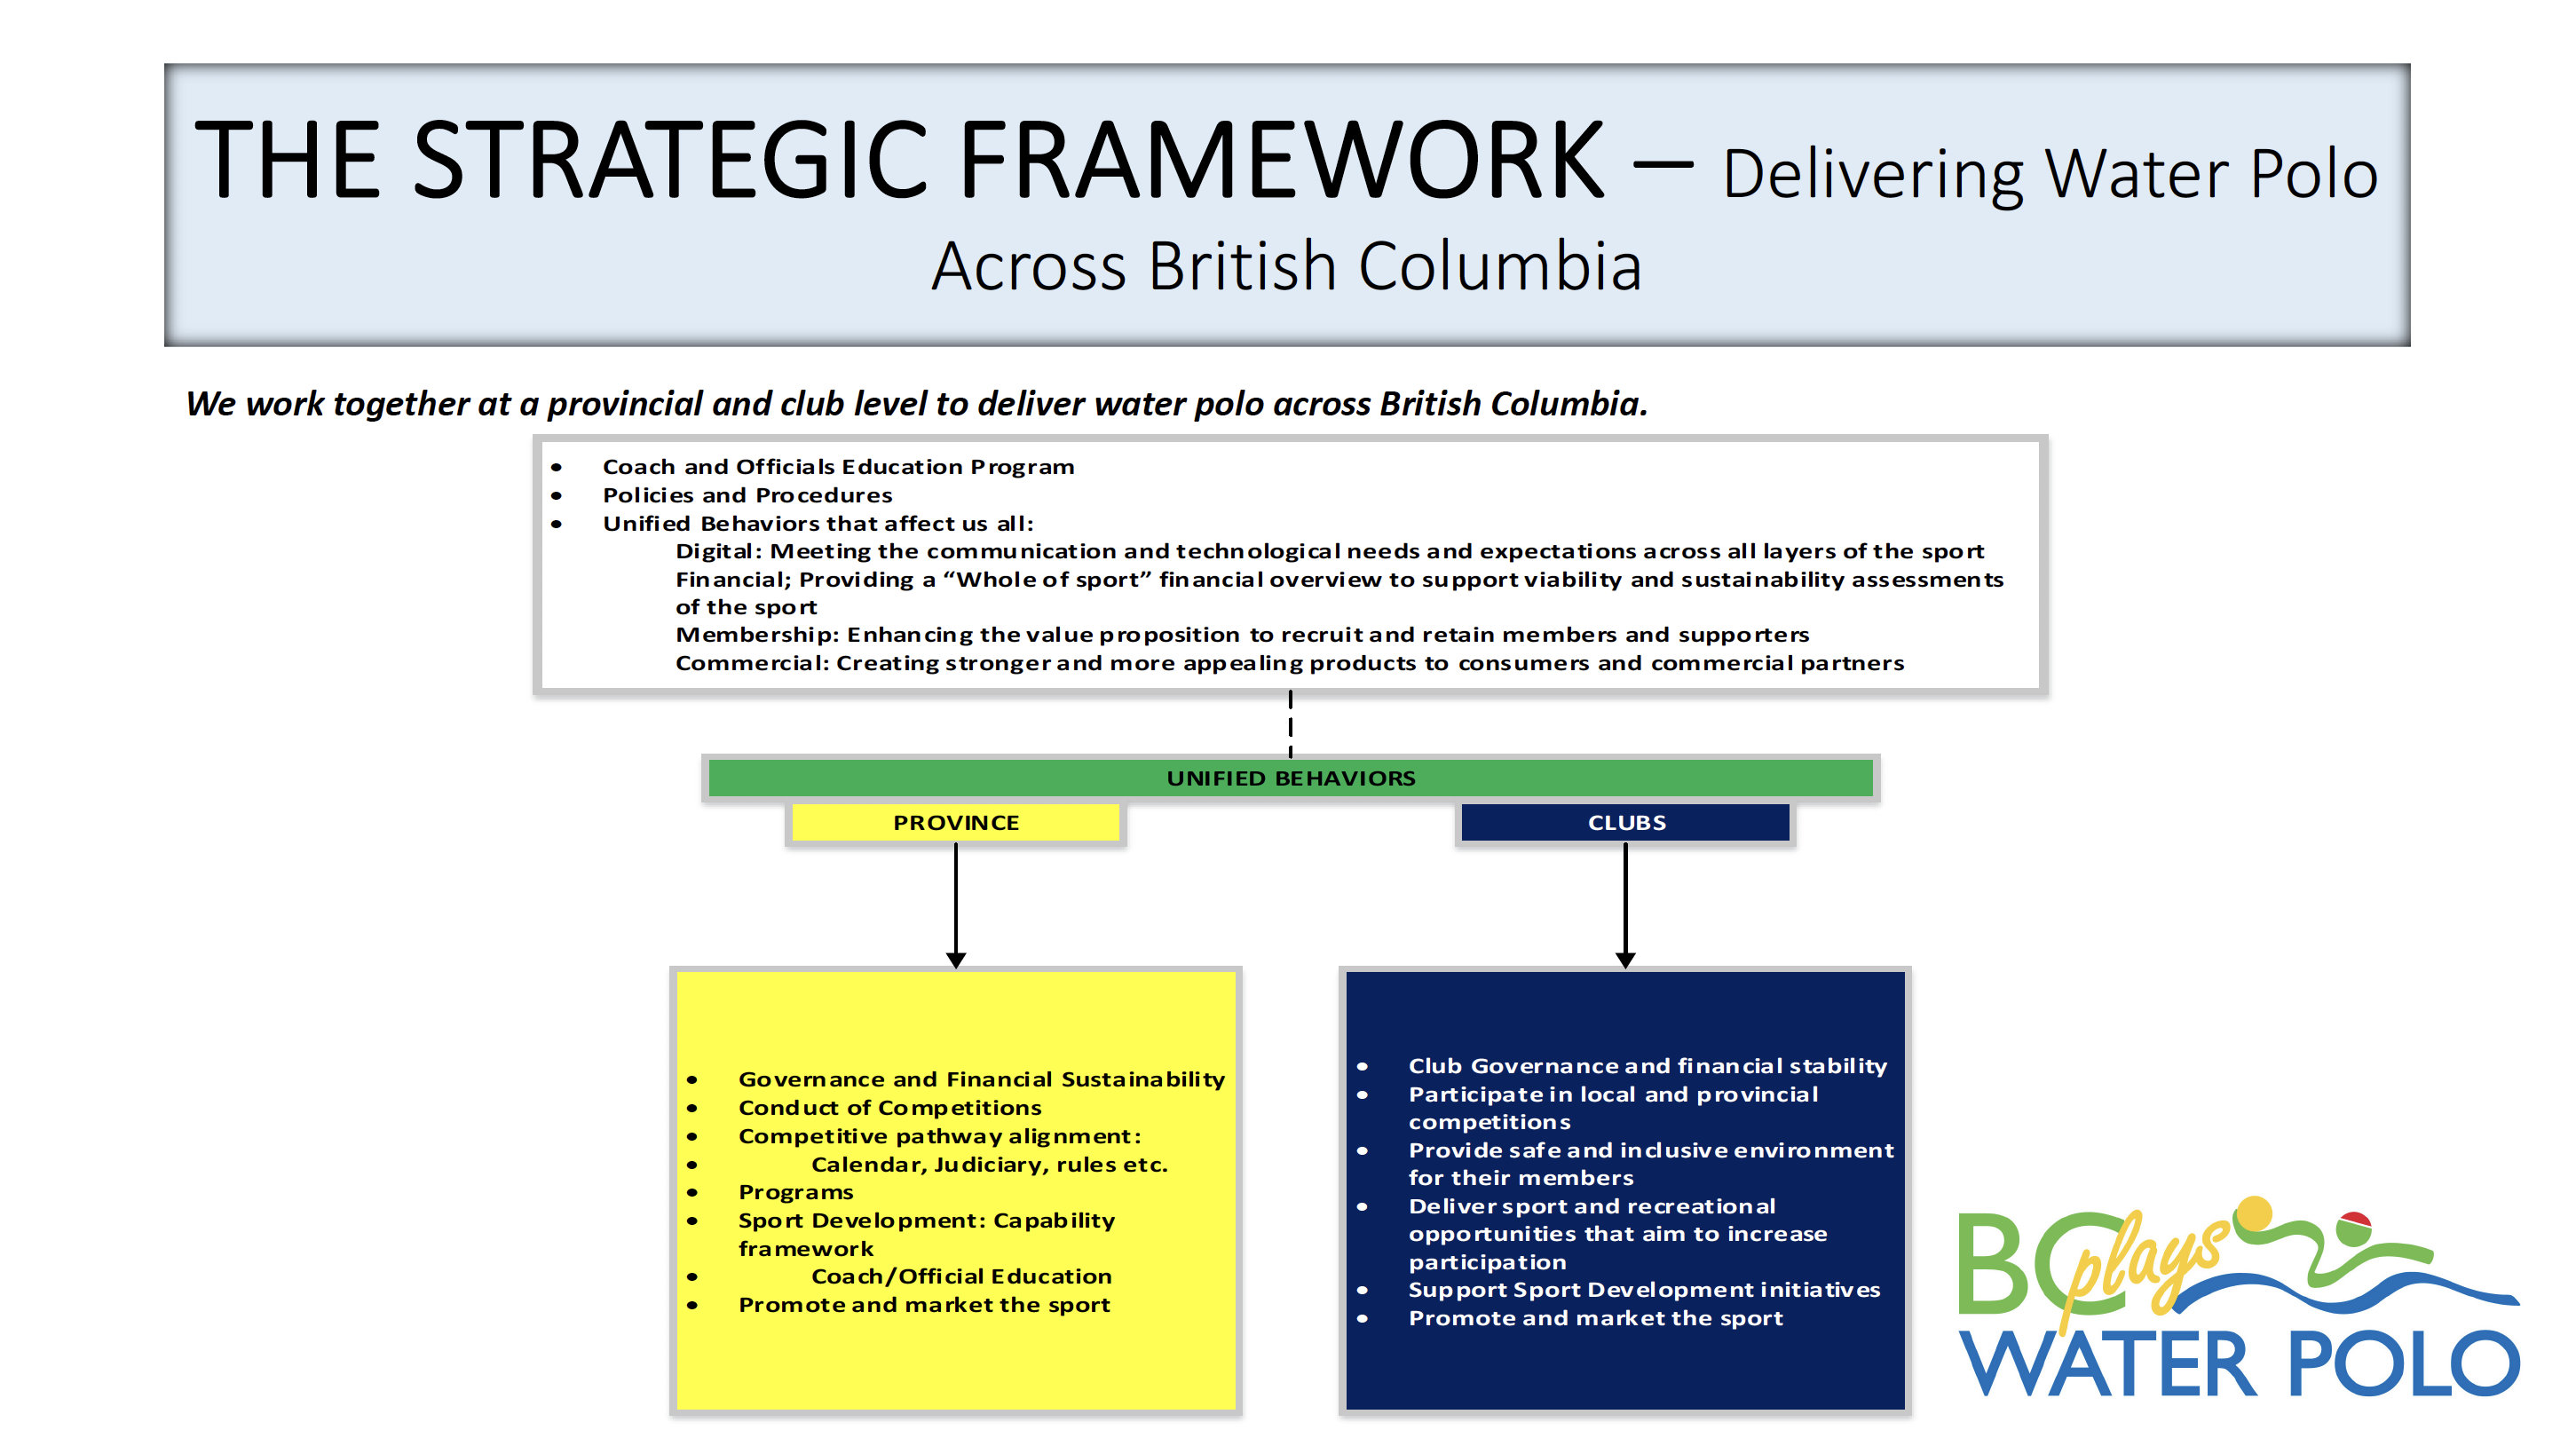 The Strategic Framework